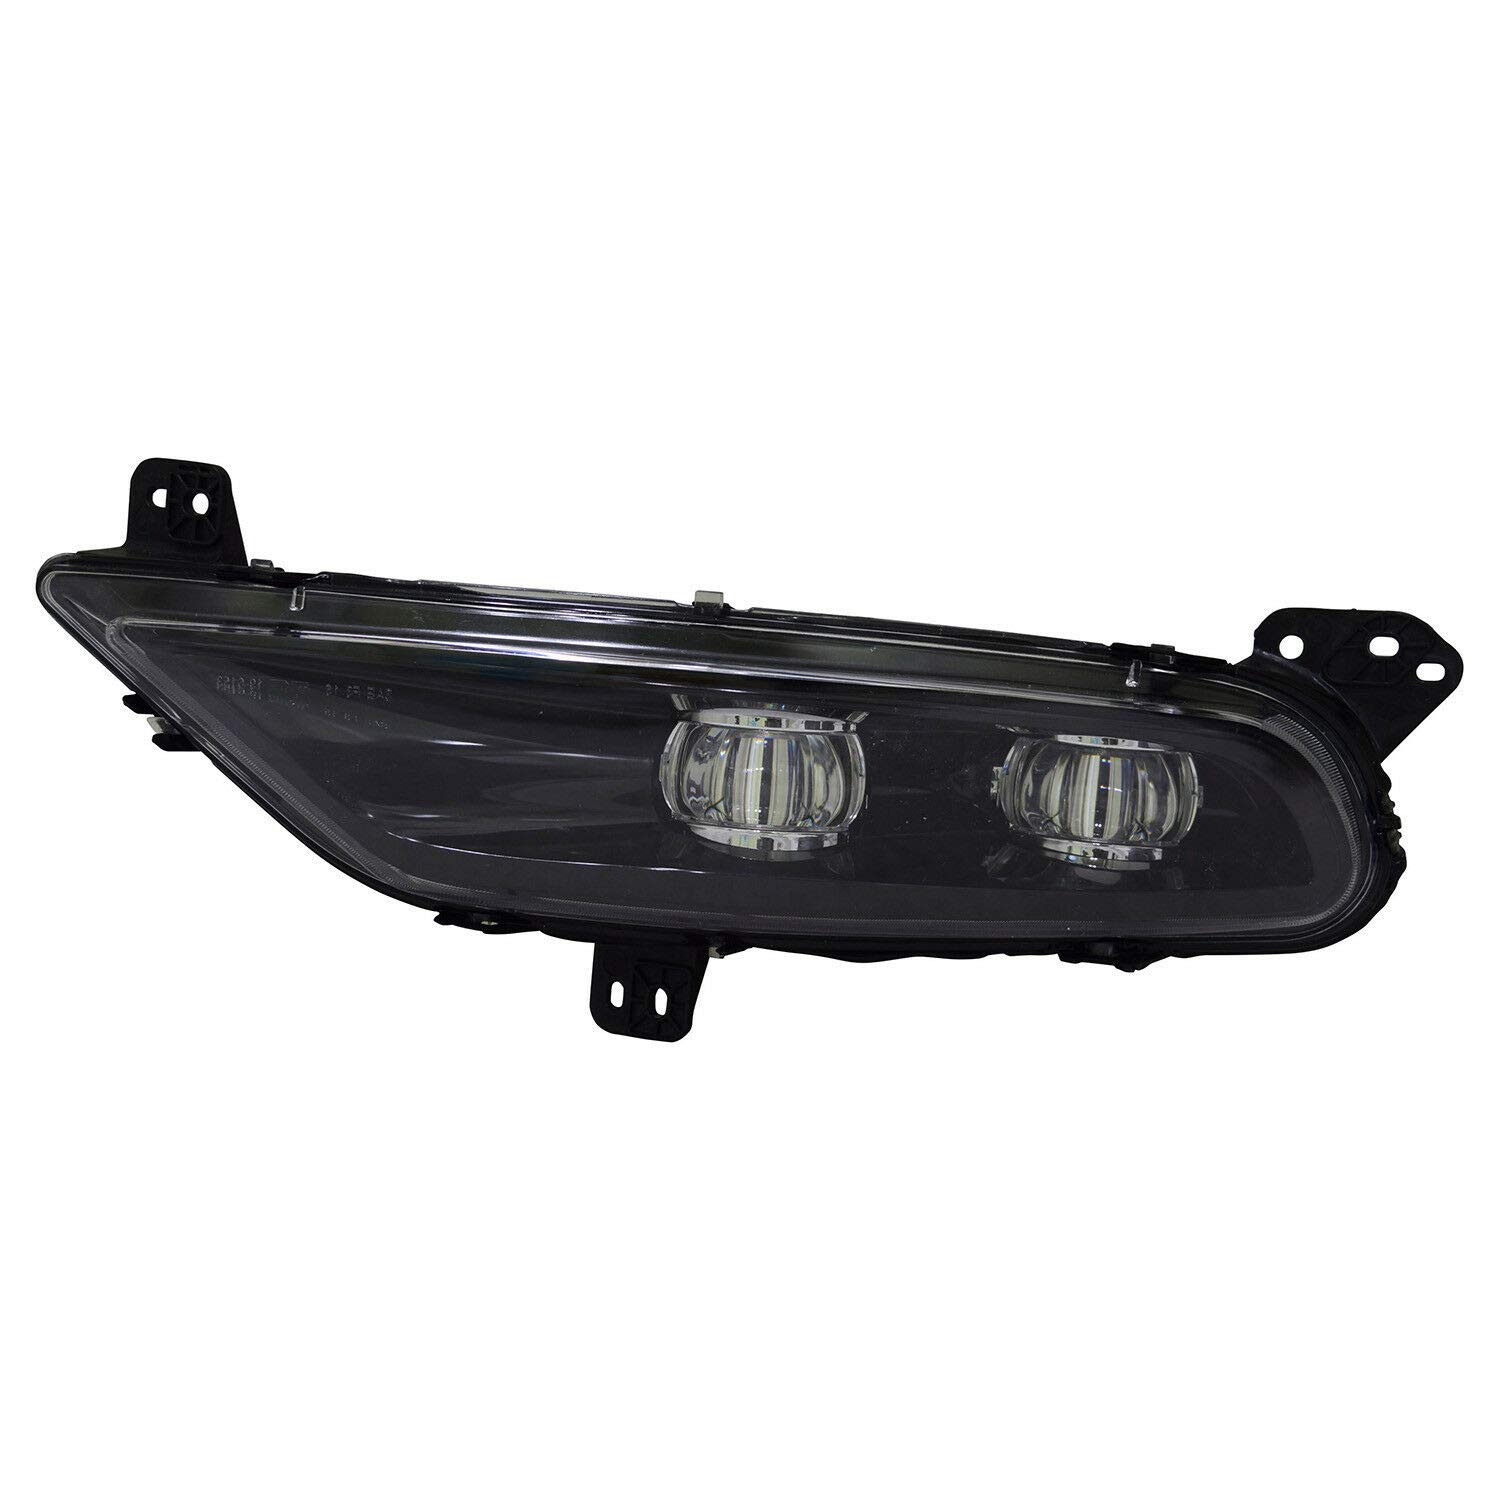 TYC 19-6154-00-1 Replacement Left Fog Lamp for Chrysler 300